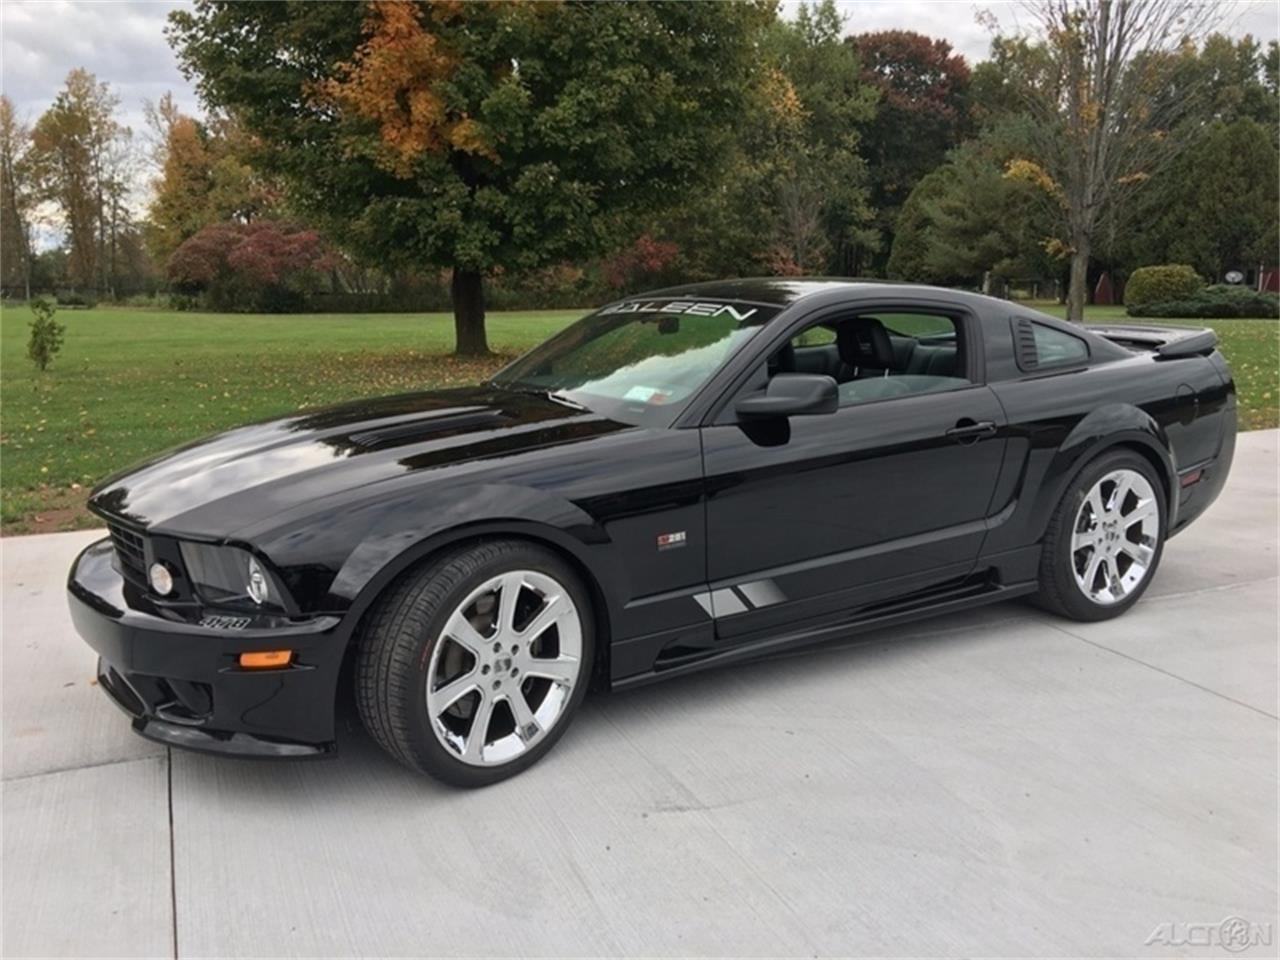 Large picture of 06 mustang saleen s281 supercharged lgj8